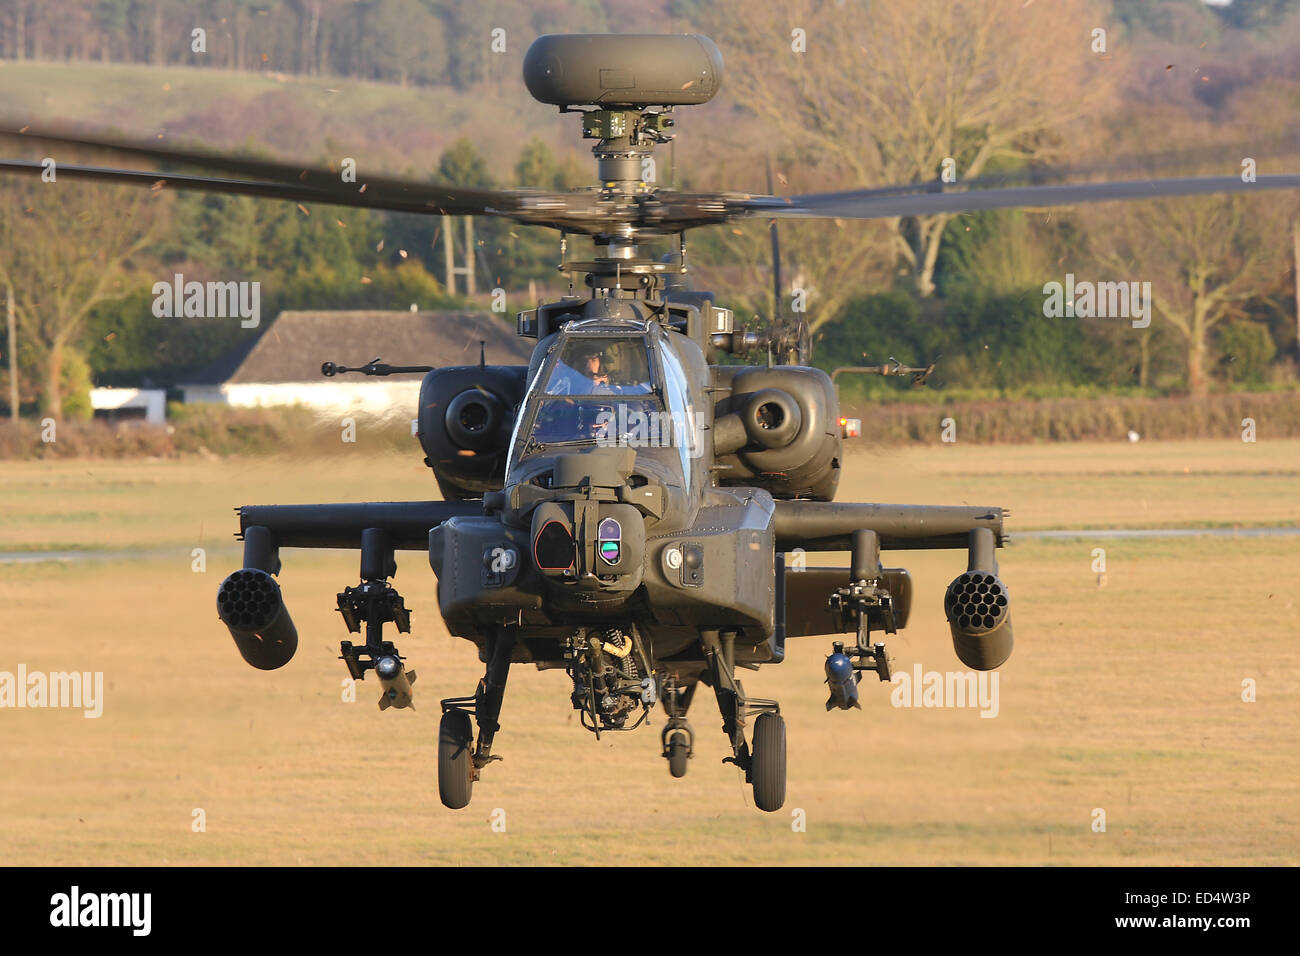 Menacing head on view of British Army Air Corps AAC Agusta Westland Ah-64D Apache attack helicopter in the hover Stock Photo